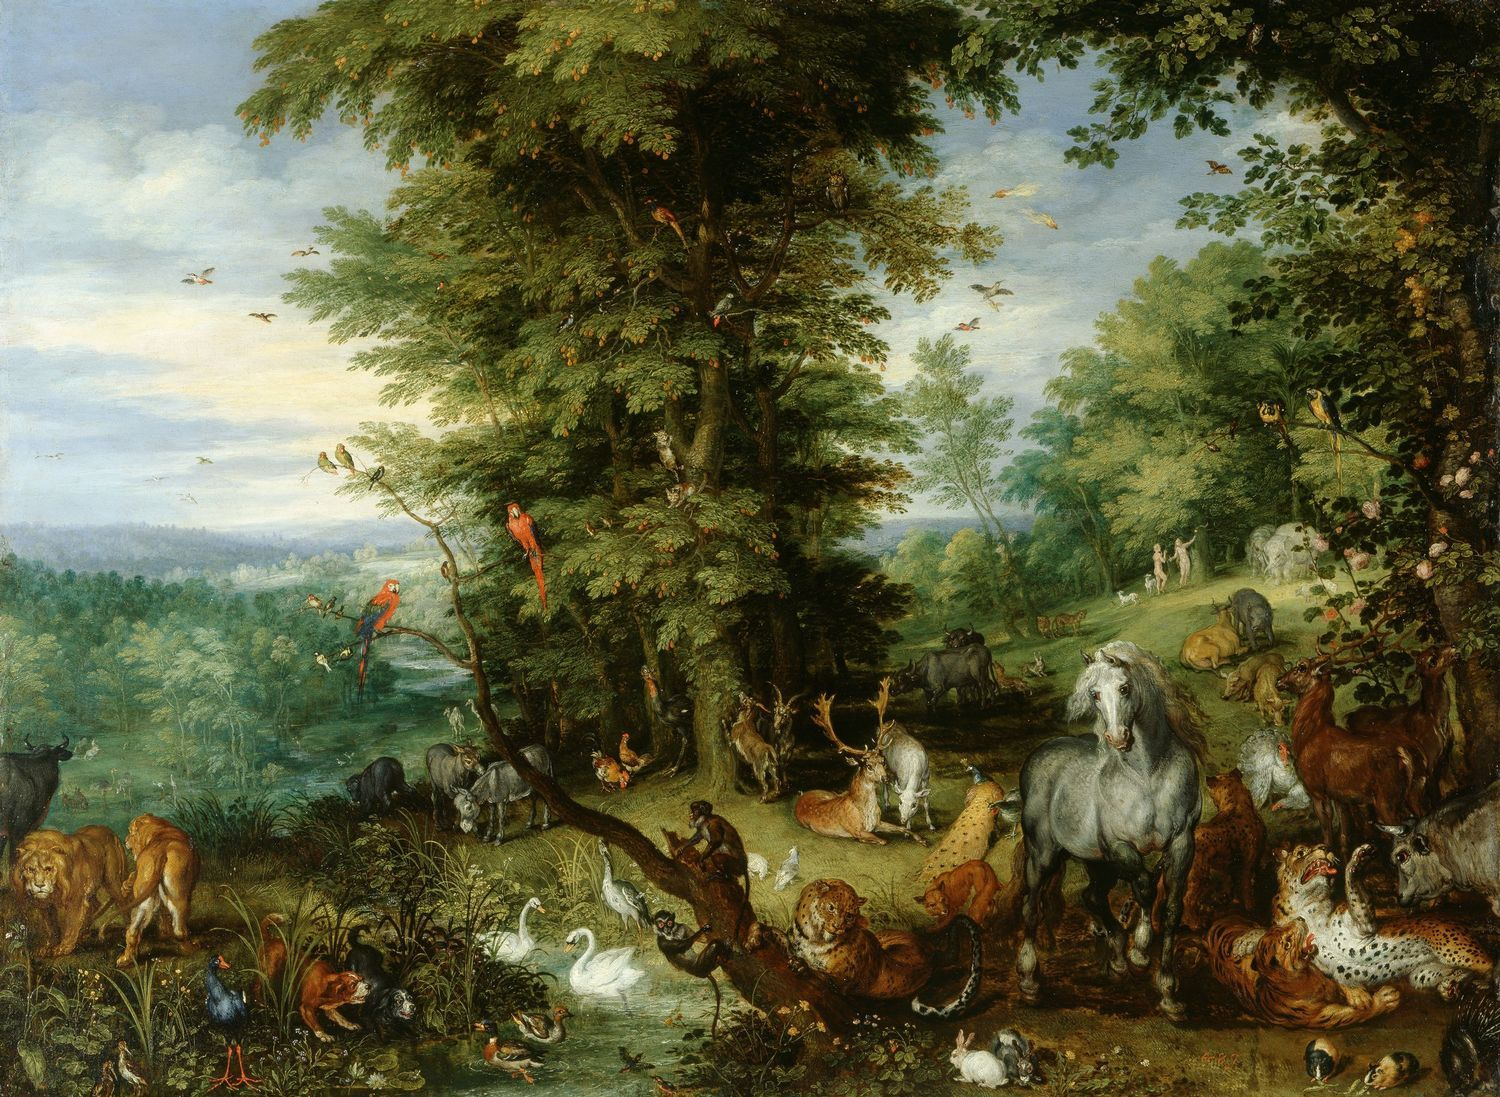 The Royal Collection: Adam and Eve in the Garden of Eden